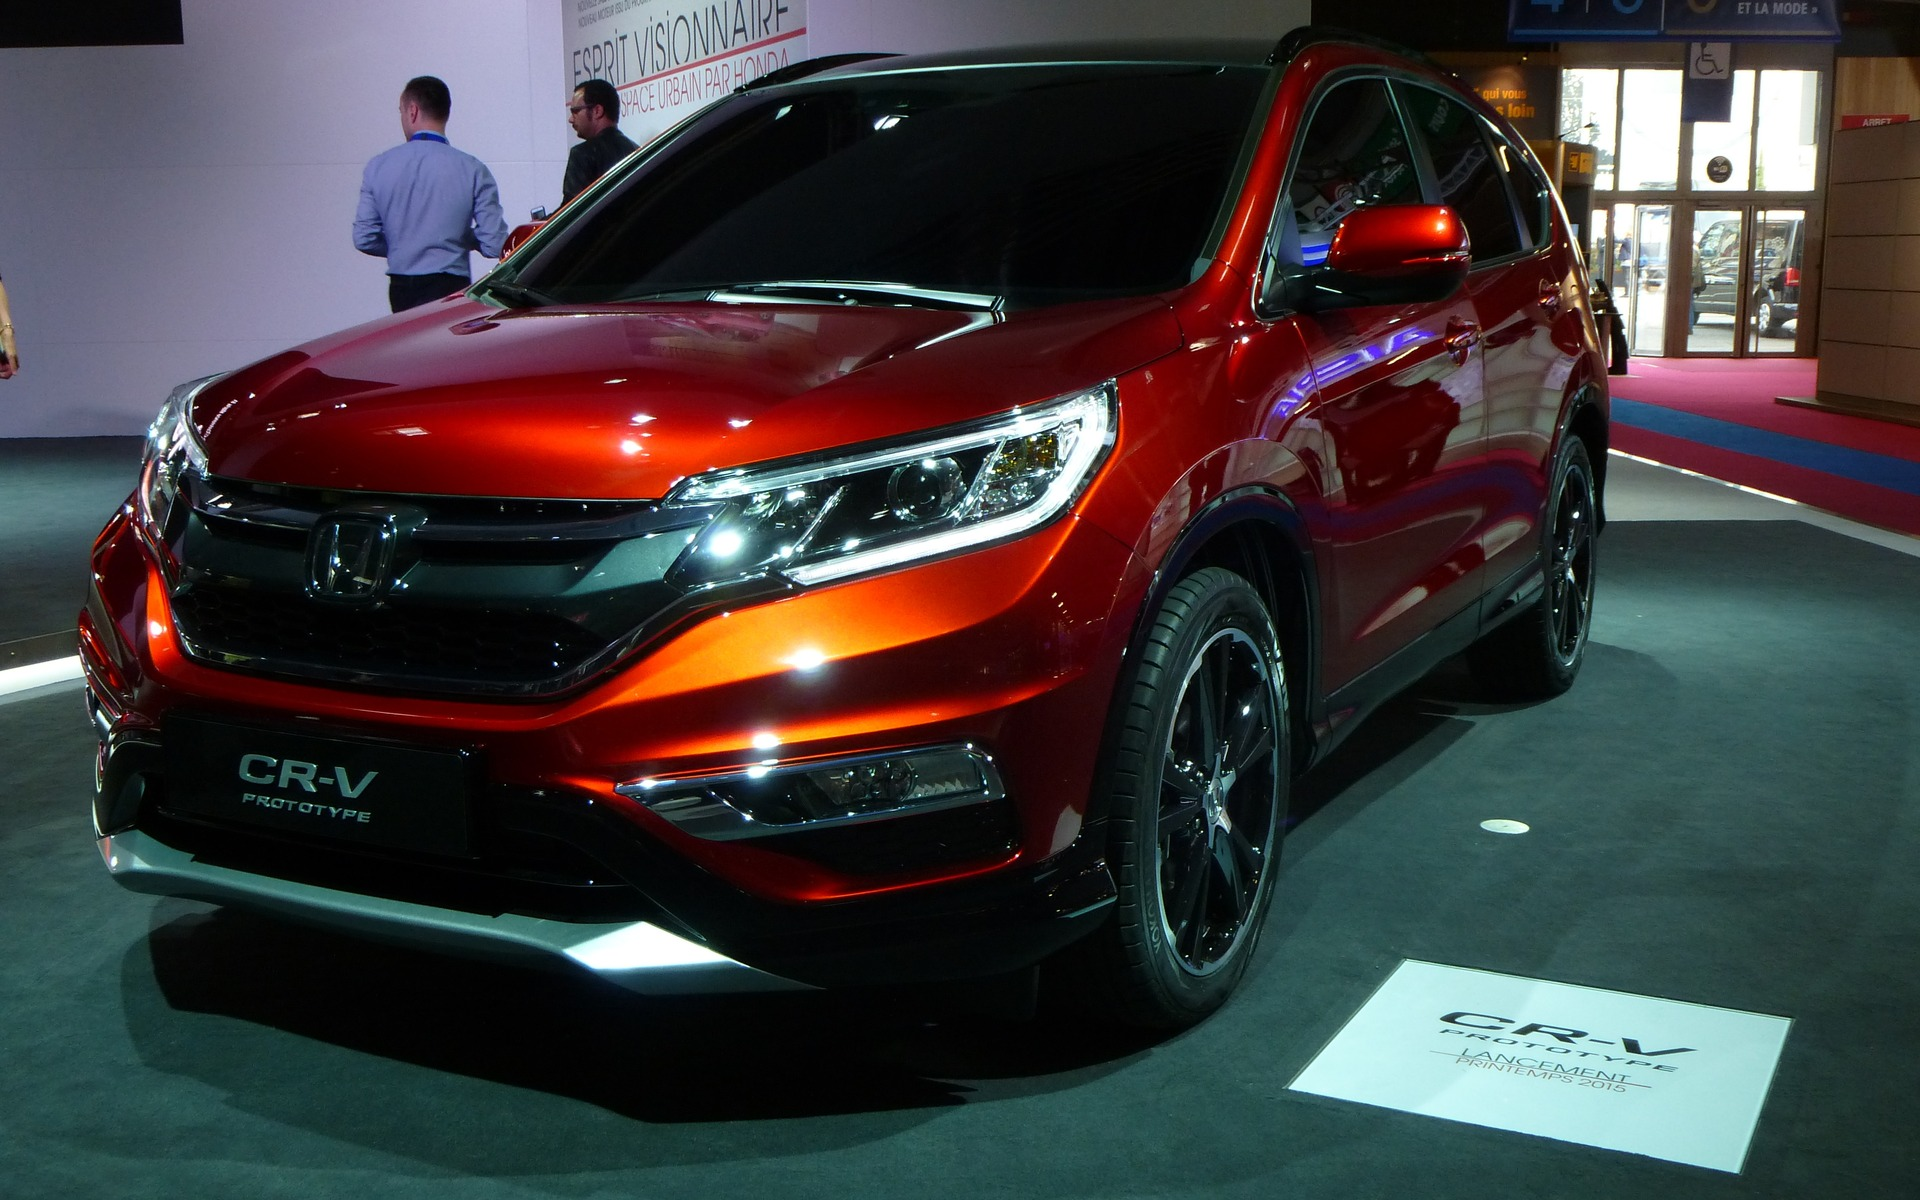 Honda cr v prototype 2015 faut le faire guide auto for Garage jean charles nacci